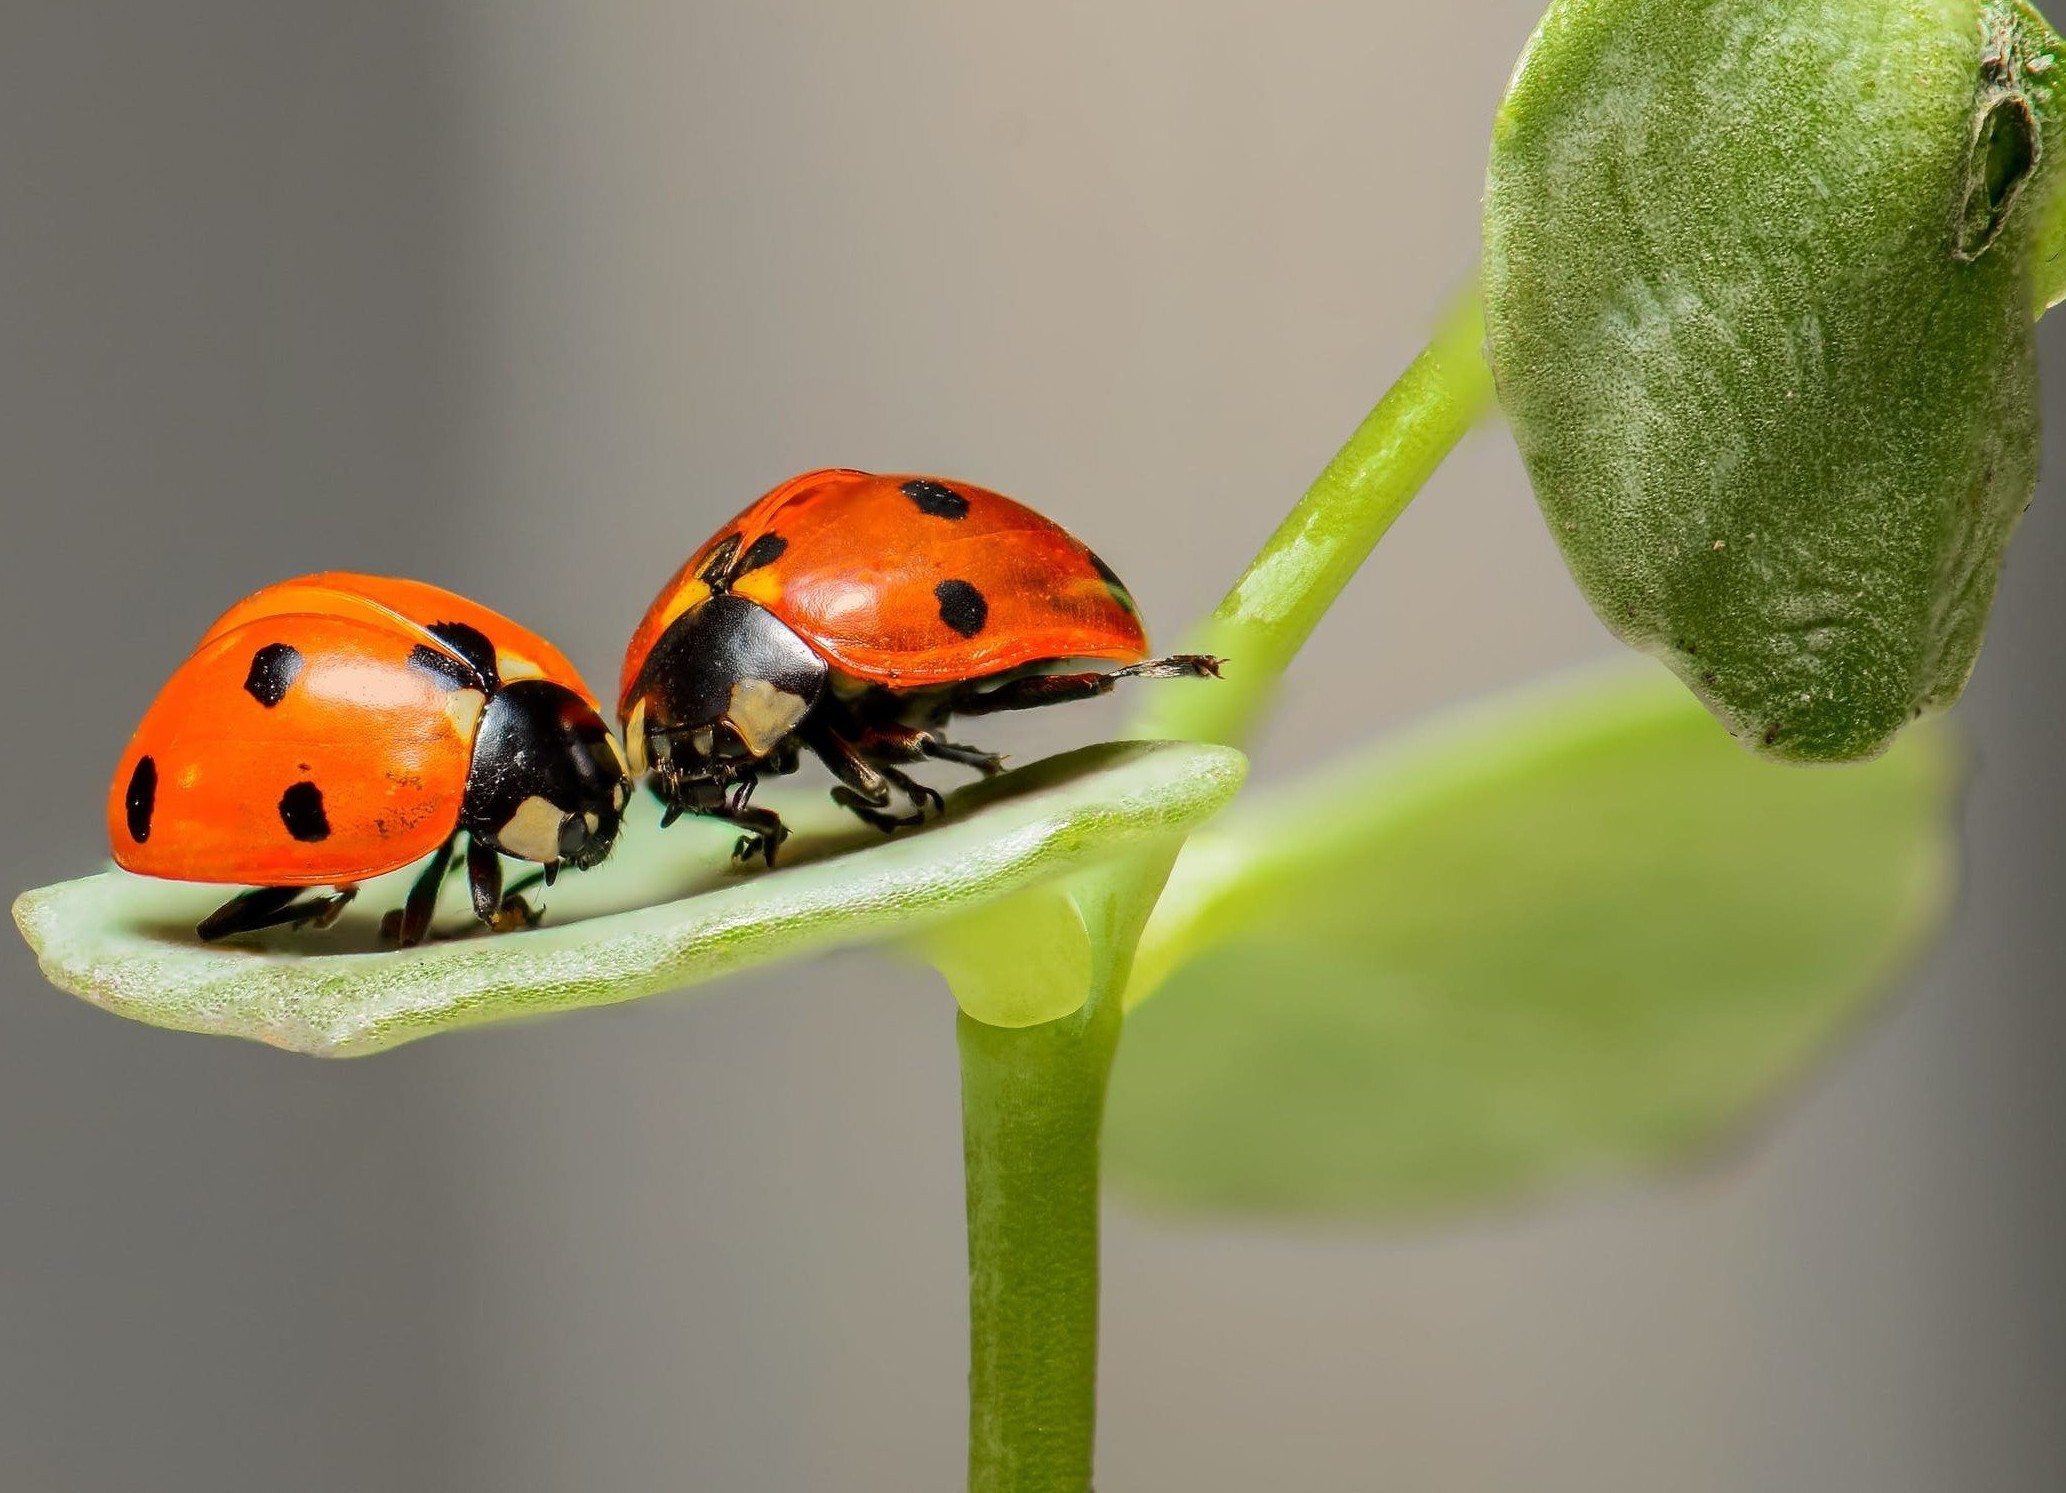 Two ladybugs sitting on leaf.